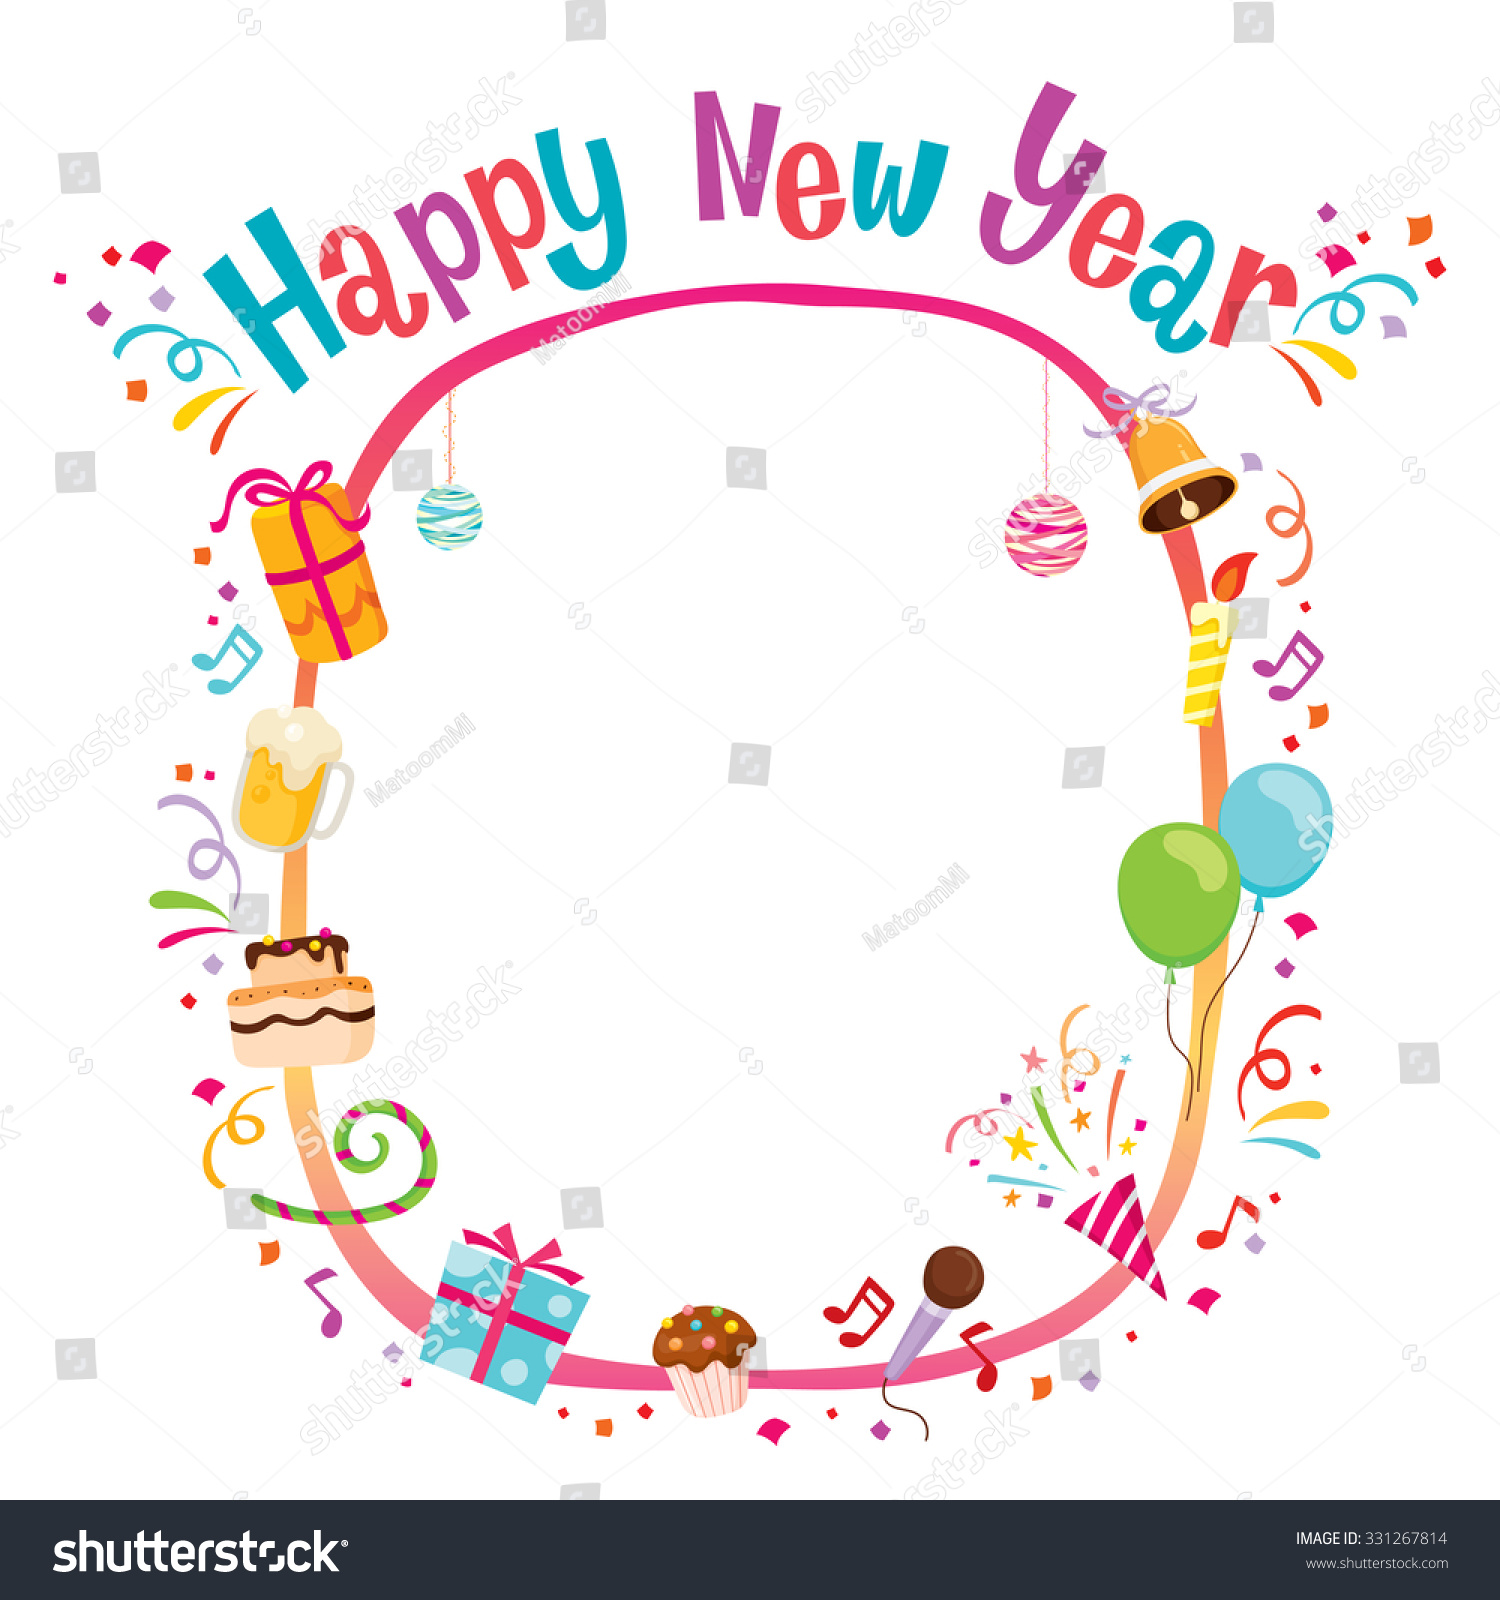 New Years Frame - New Year\'s Eve Frame Stock Photos - Image: 7428593 ...